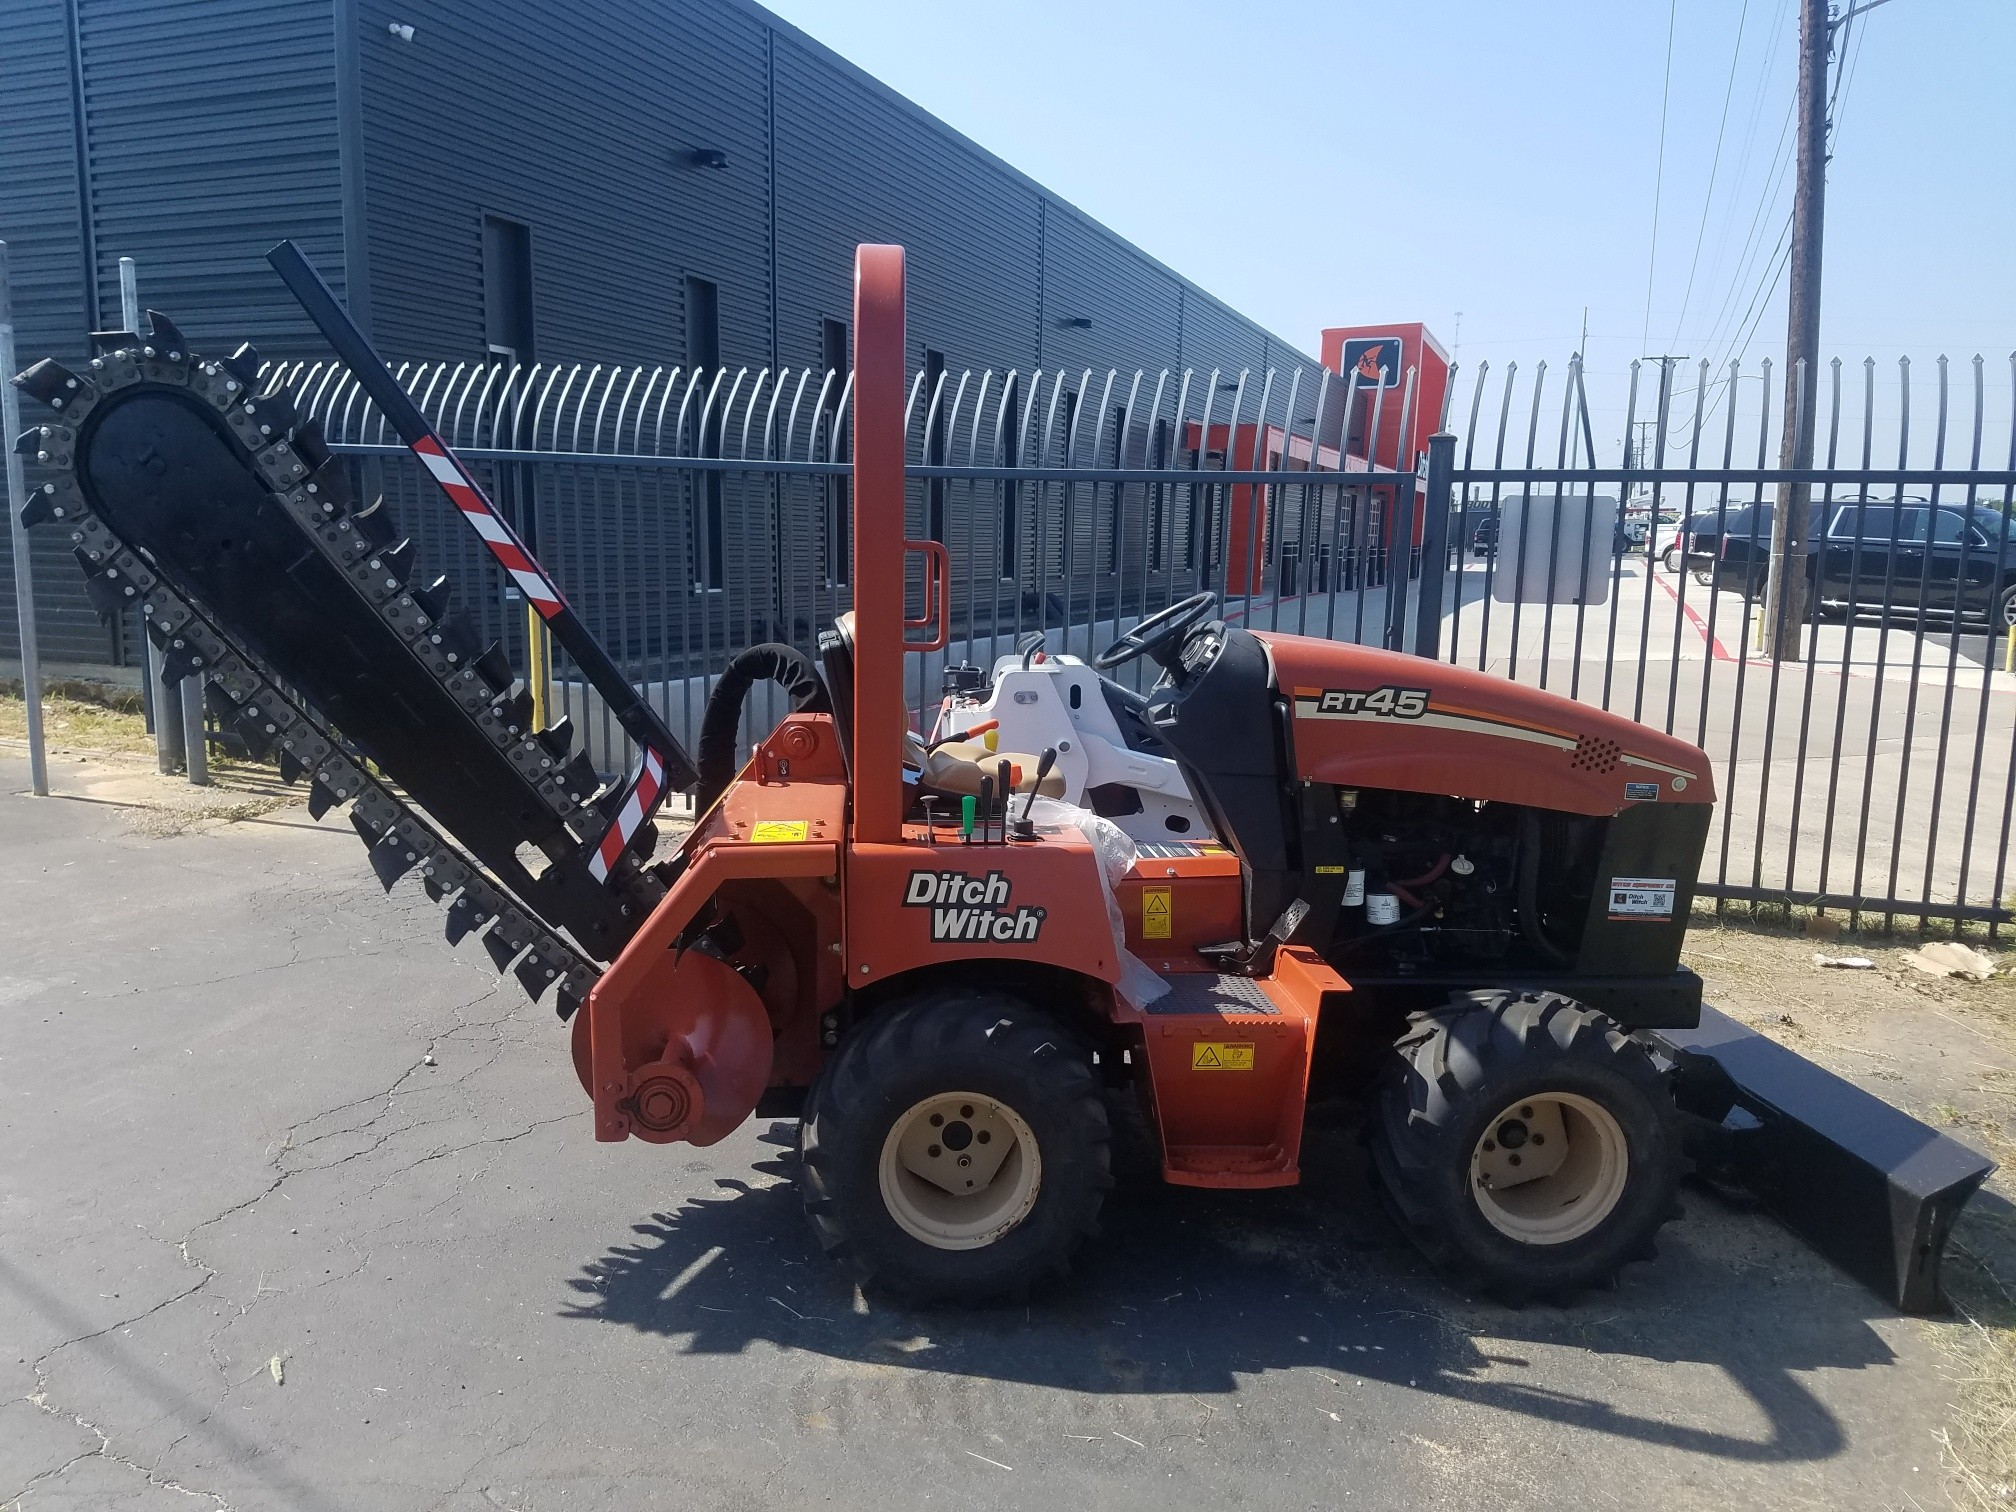 Ditch Witch Trenchers, Vibratory Plows, Skid Steers, Excavators